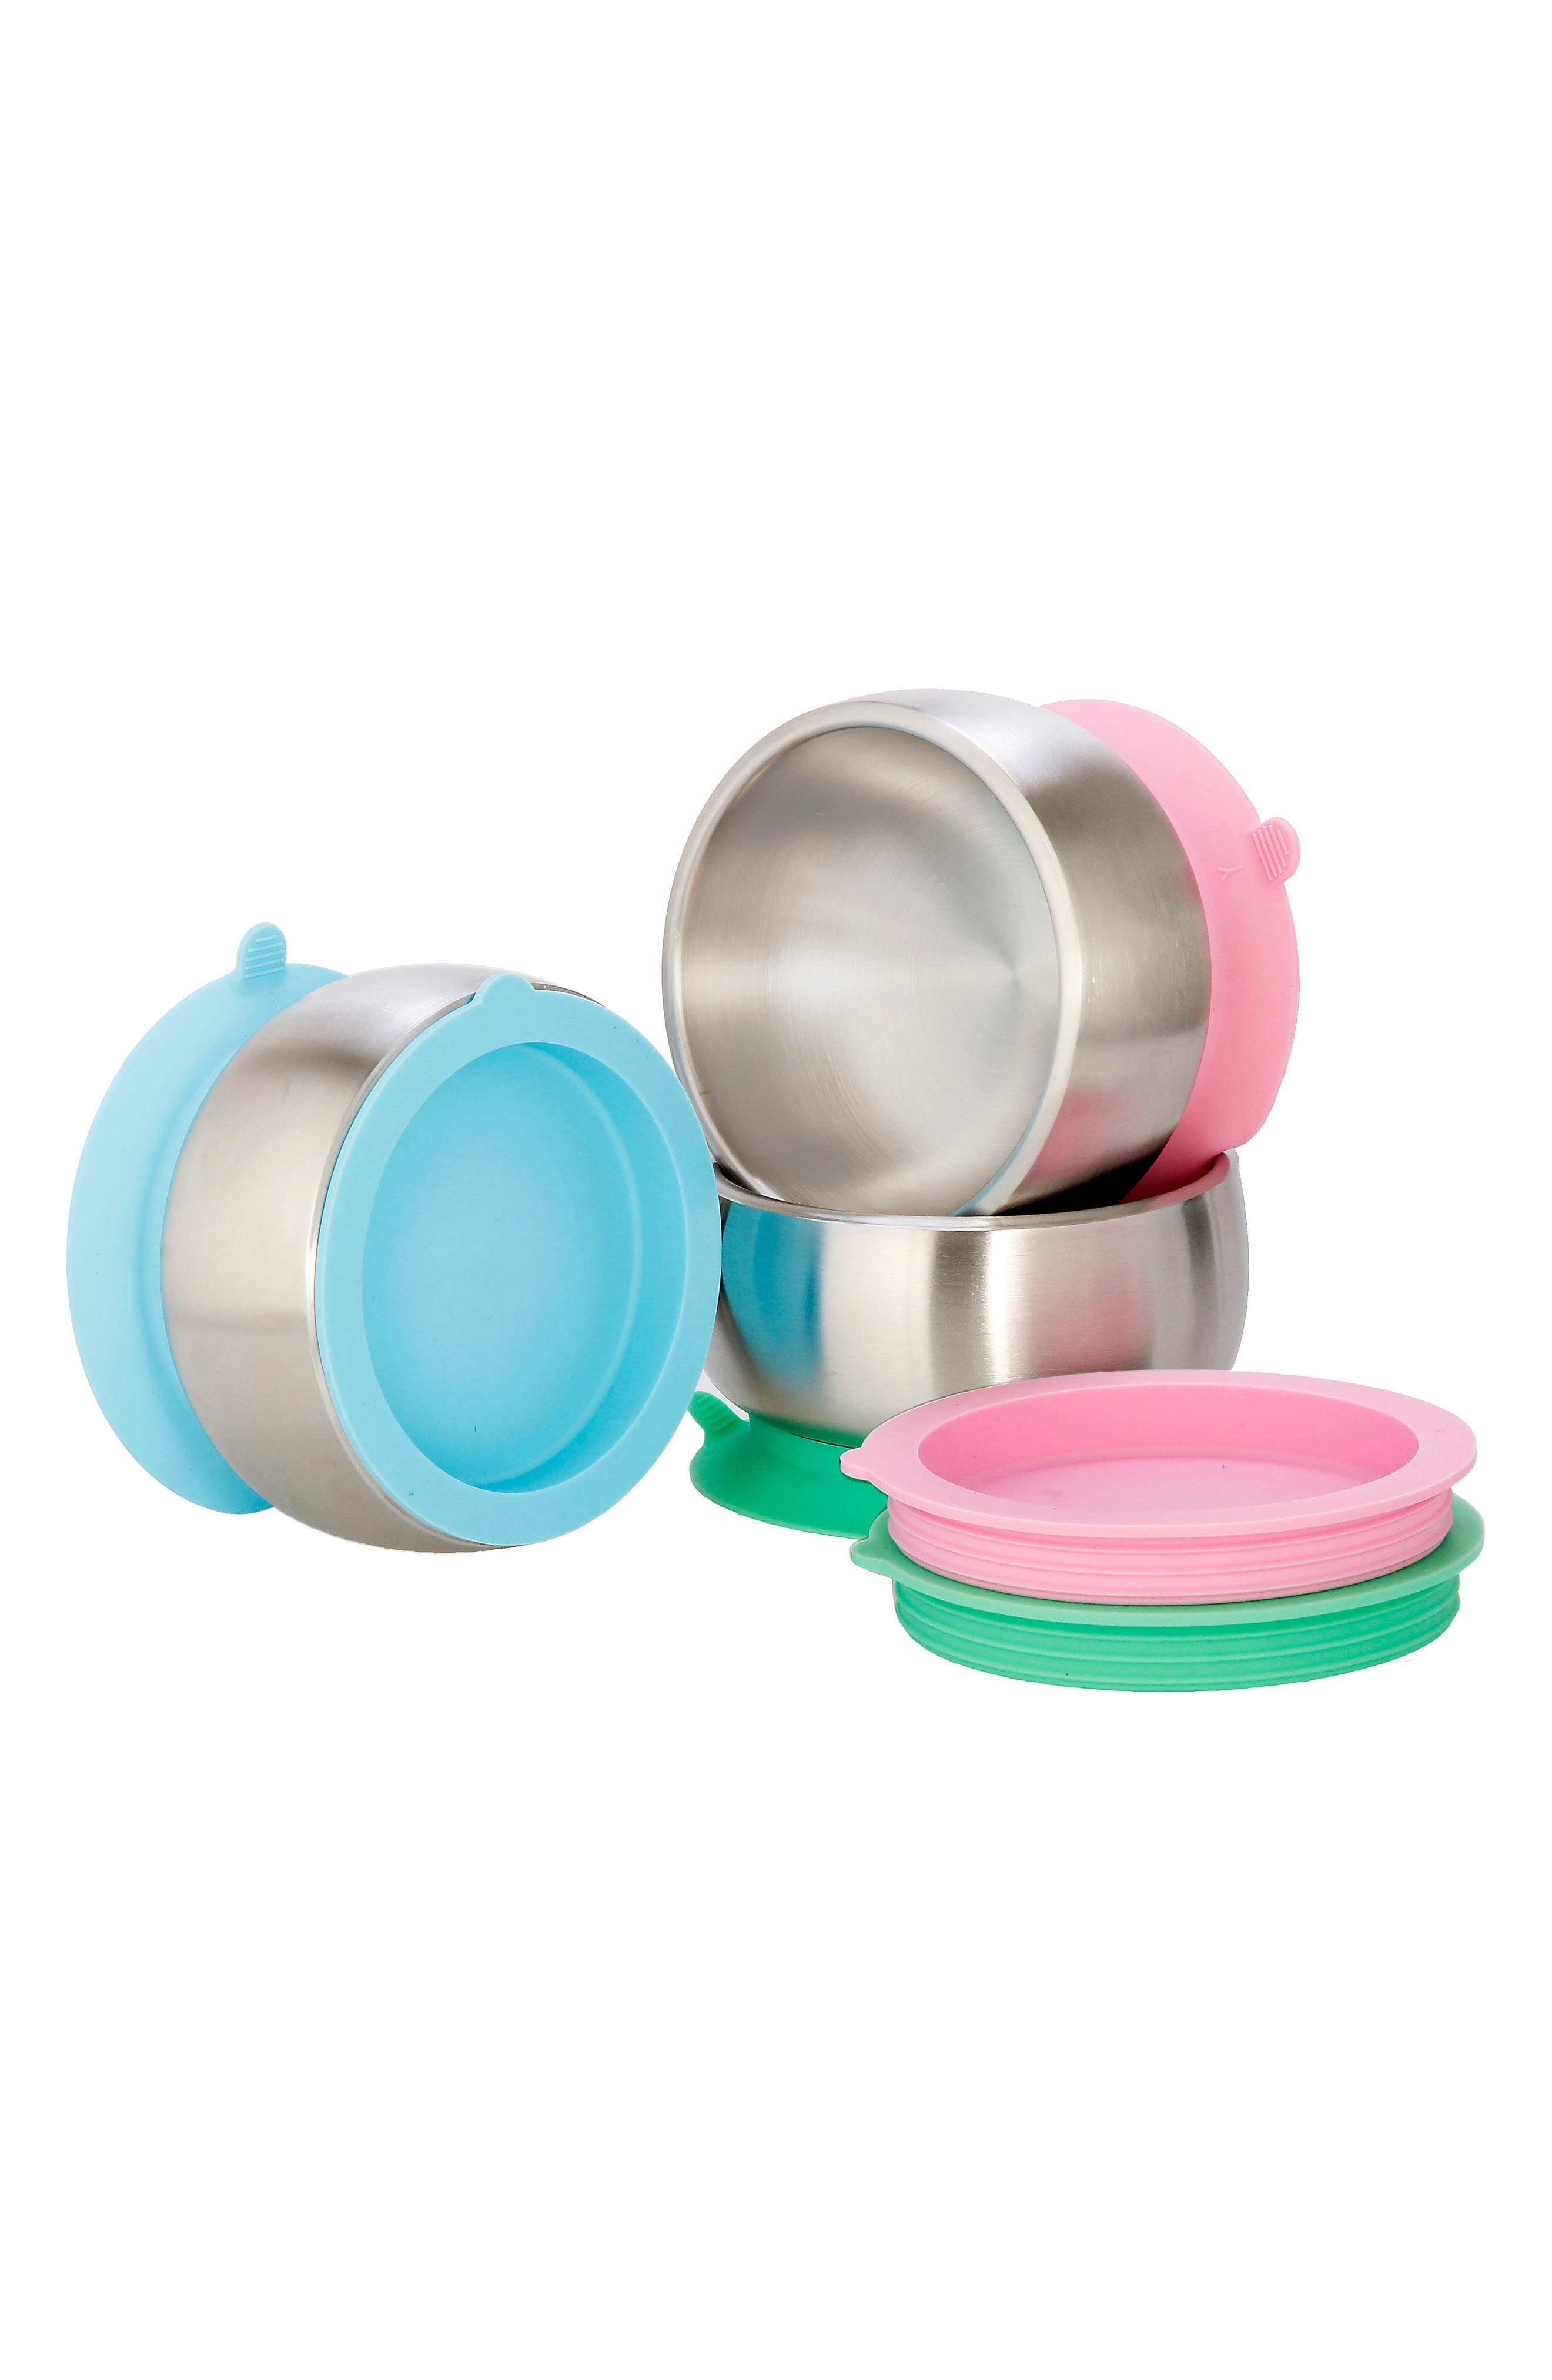 Stainless Steel Stay-Put Suction Bowl & Lid,                             Alternate thumbnail 4, color,                             Pink